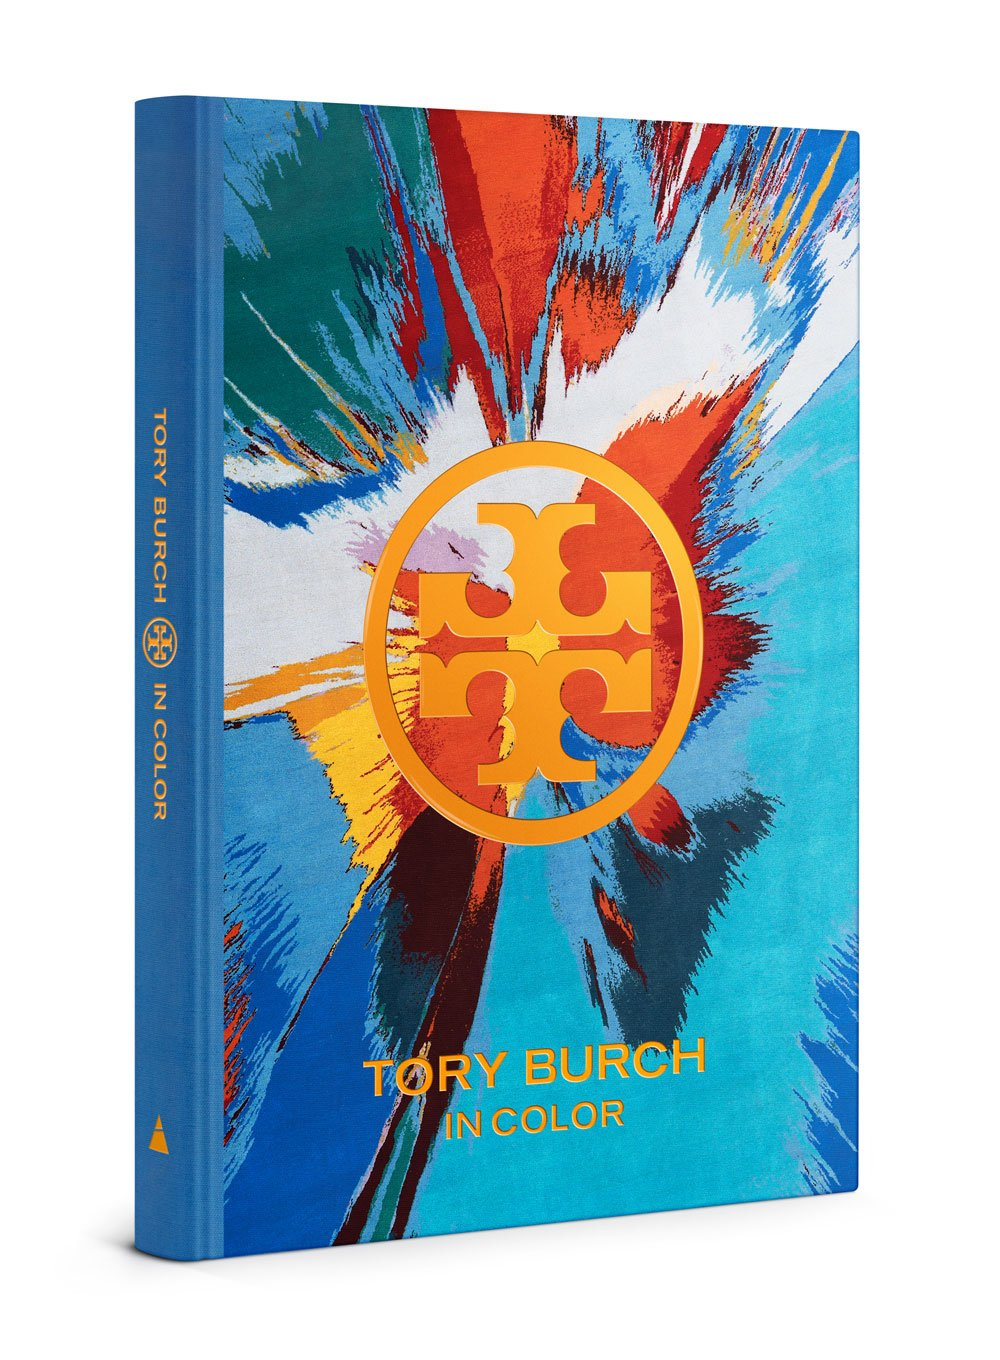 Tory Burch: In Color: Tory Burch, Nandini Wolfe, Anna Wintour:  9781419707476: Amazon.com: Books